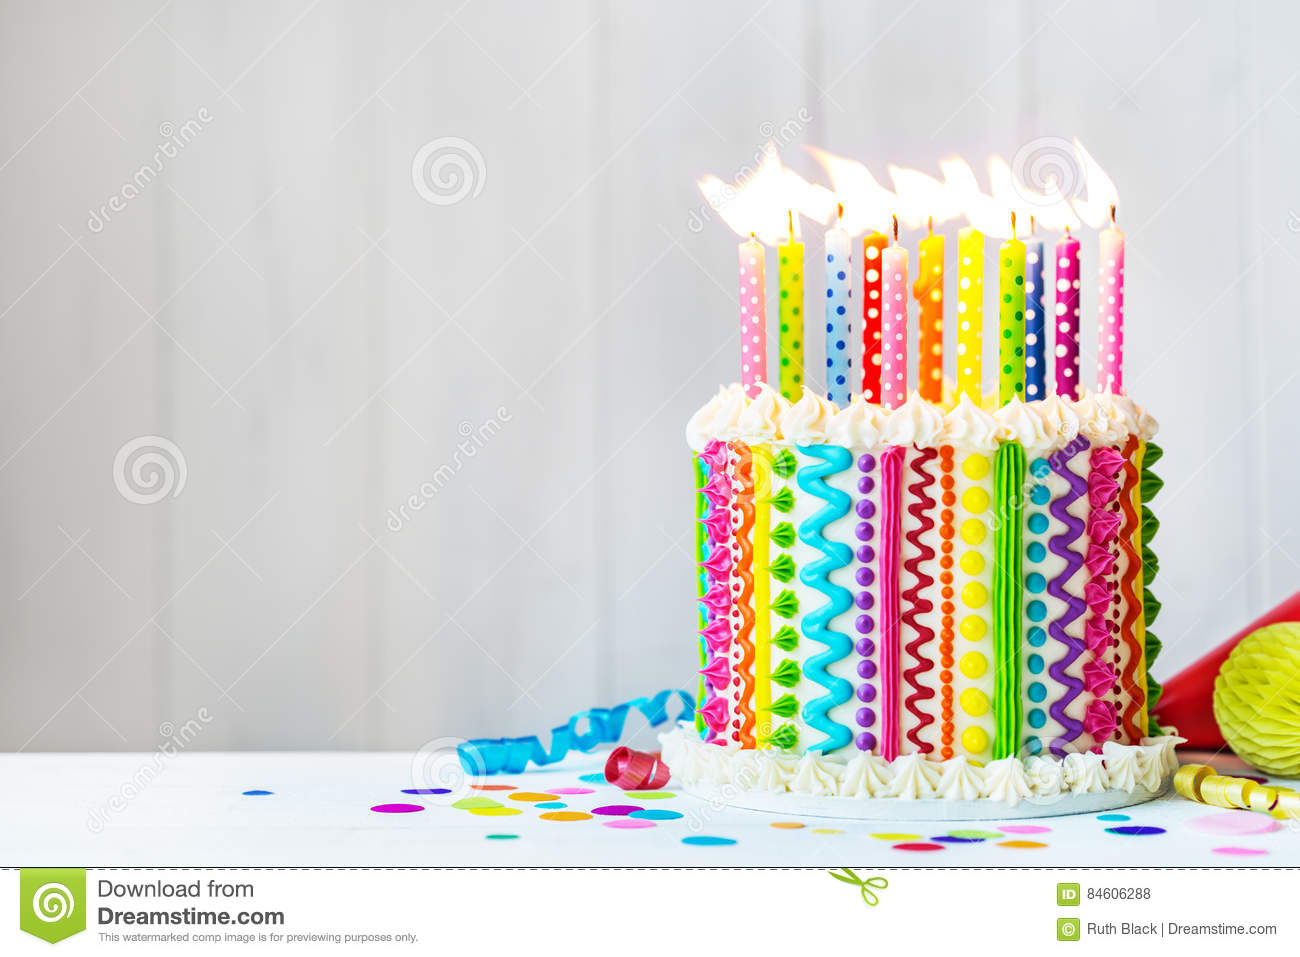 Swell Rainbow Birthday Cake Stock Photo Image Of Food Frosted 84606288 Funny Birthday Cards Online Elaedamsfinfo